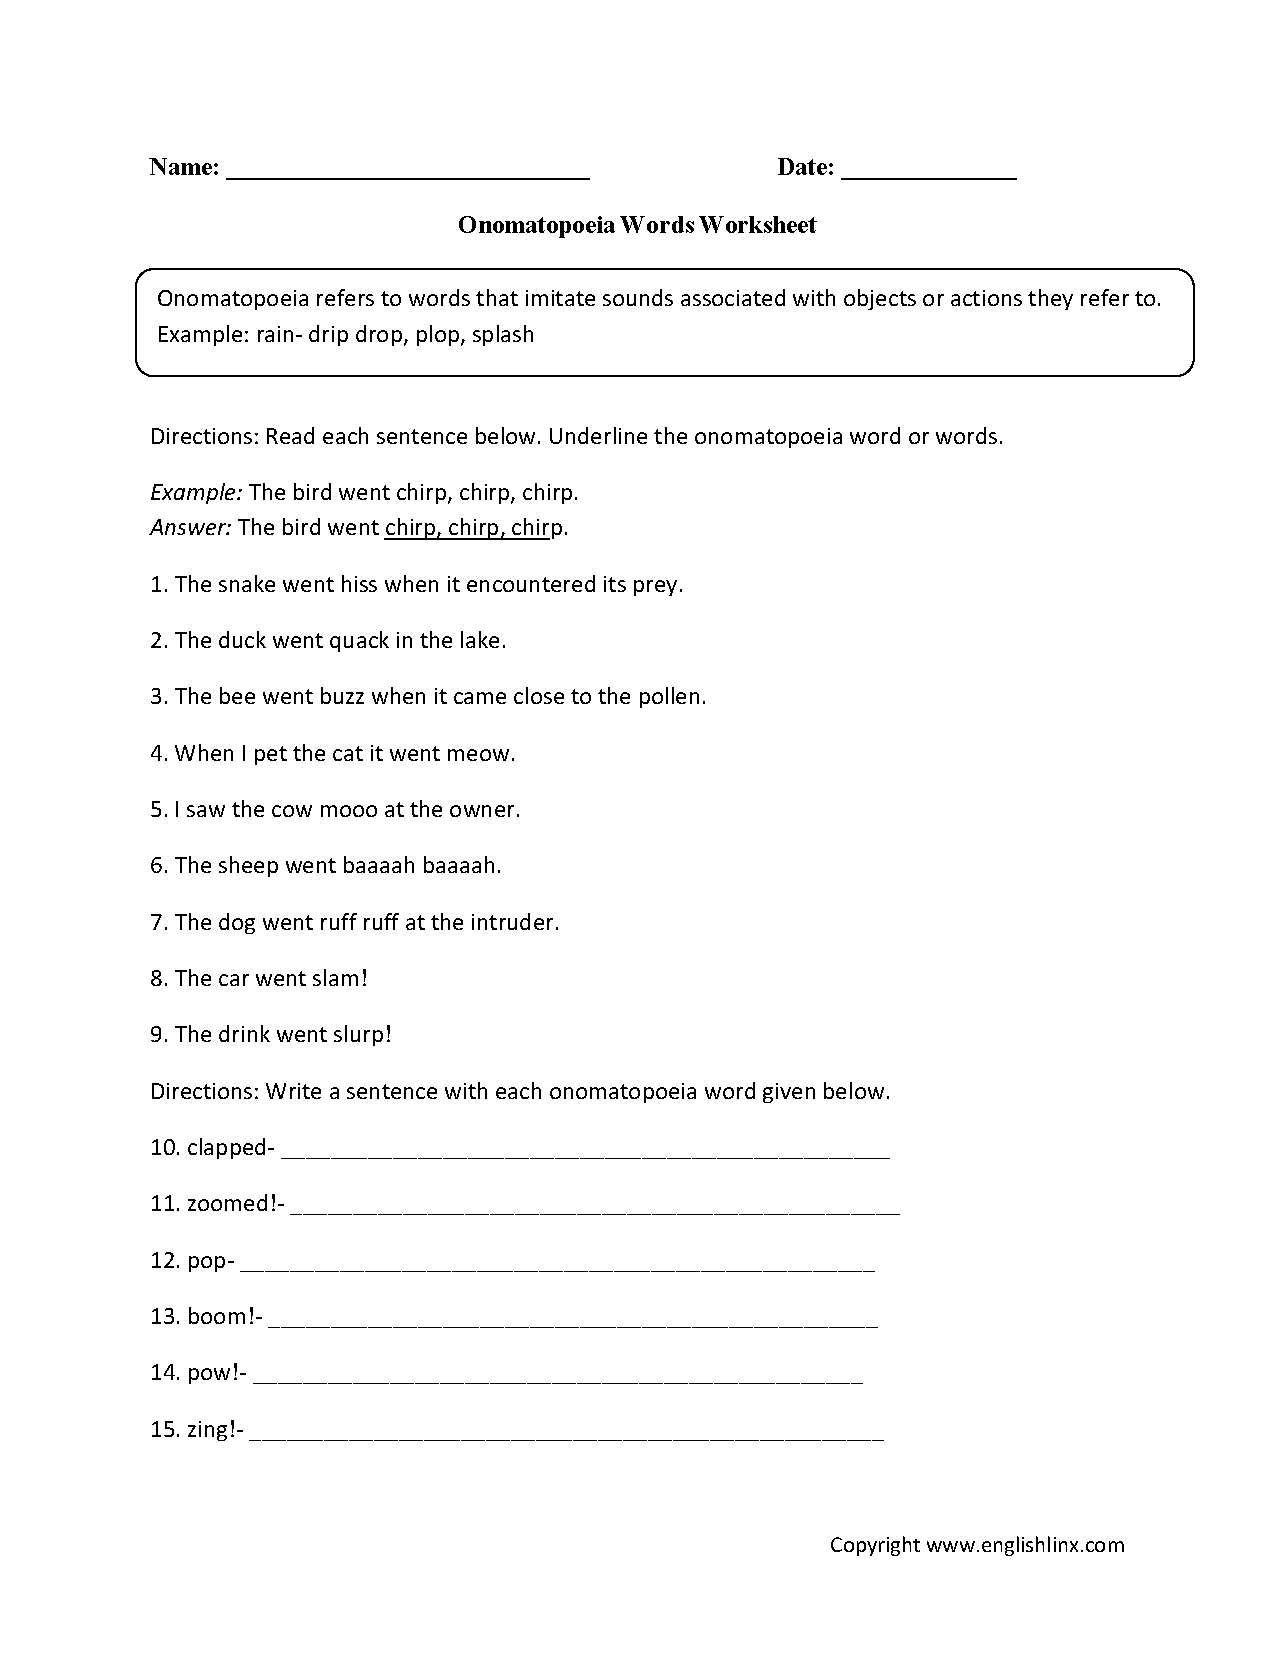 Worksheets Onomatopoeia Worksheet onomatopoeia words worksheet englishlinx com board pinterest these worksheets are great for working with use the beginner interme